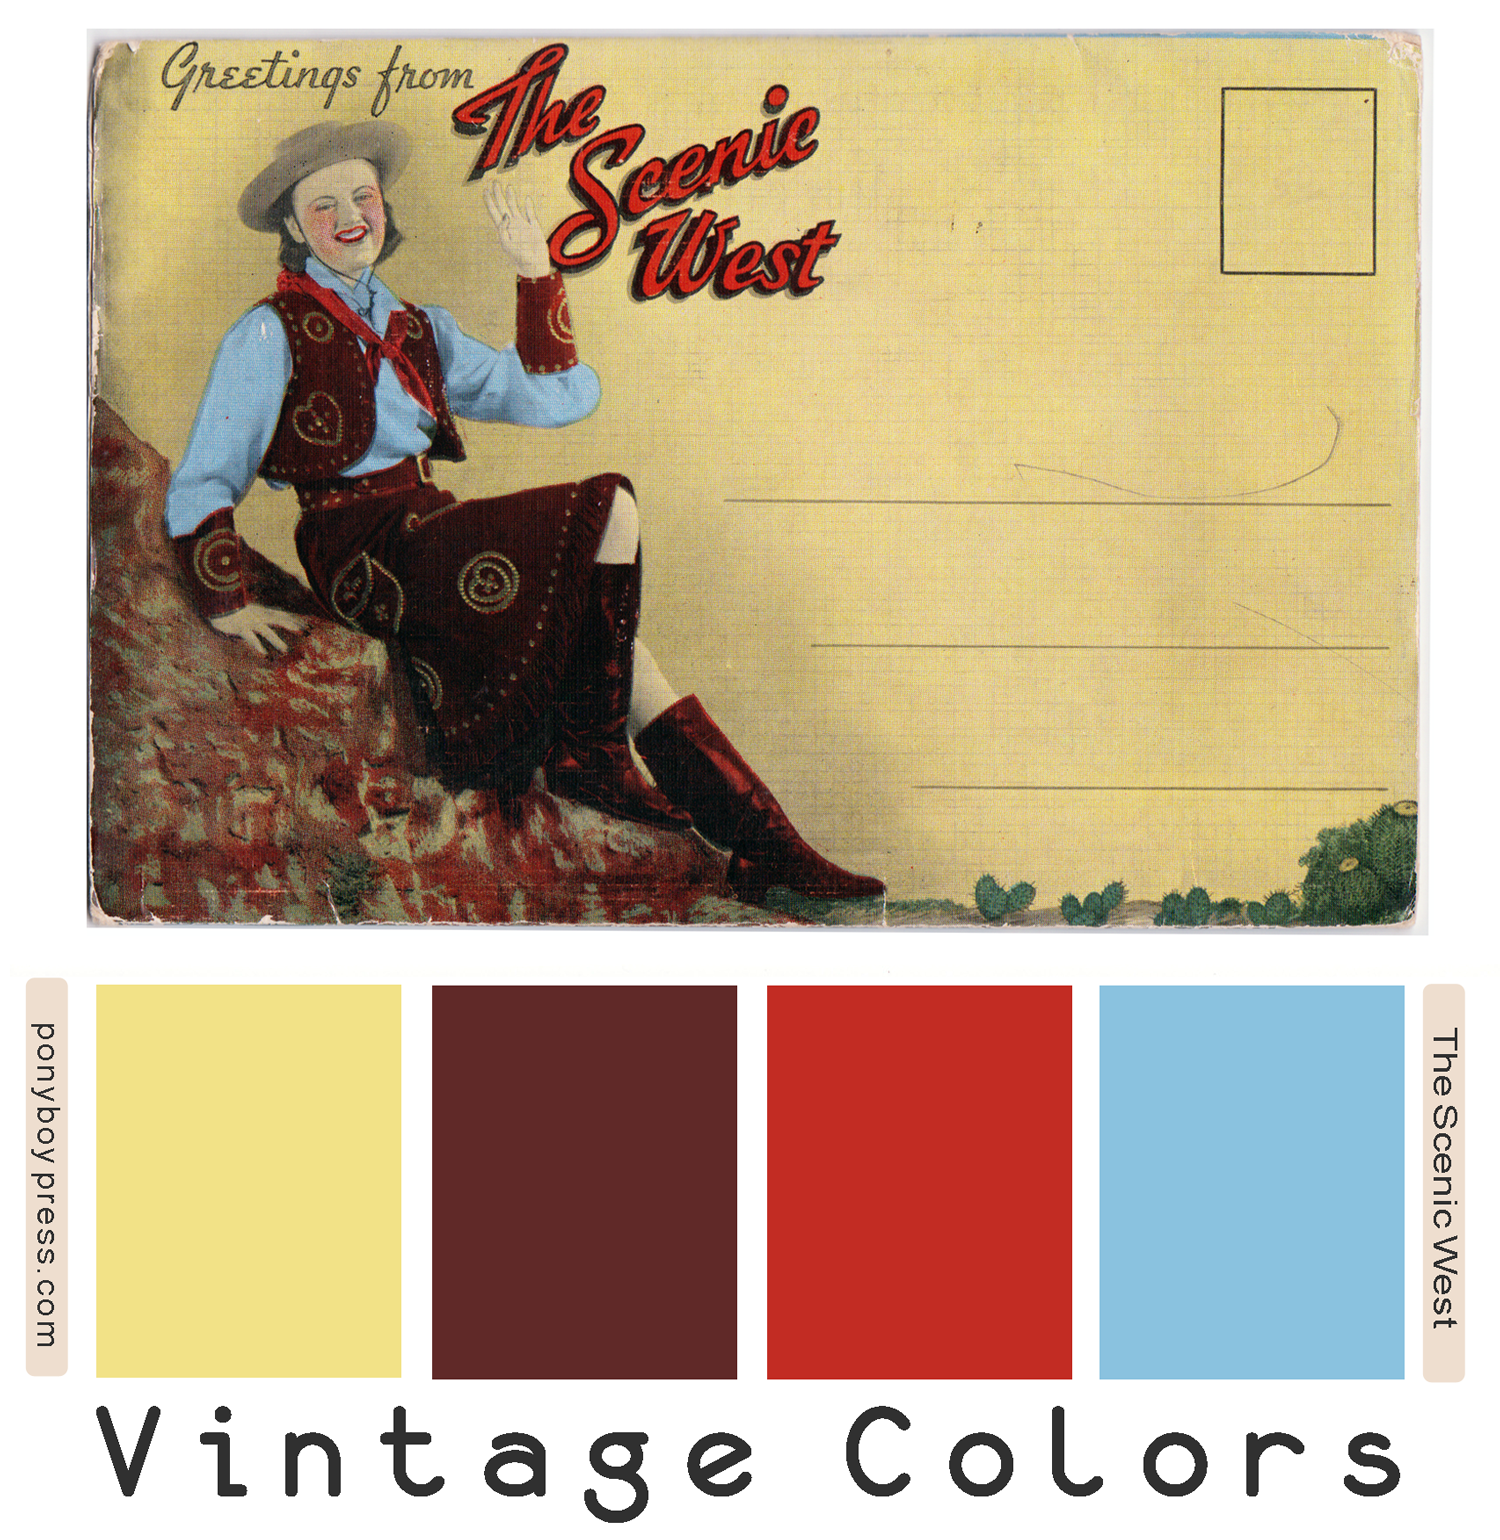 Vintage Color Palette - The Scenic West - ponyboypress.com